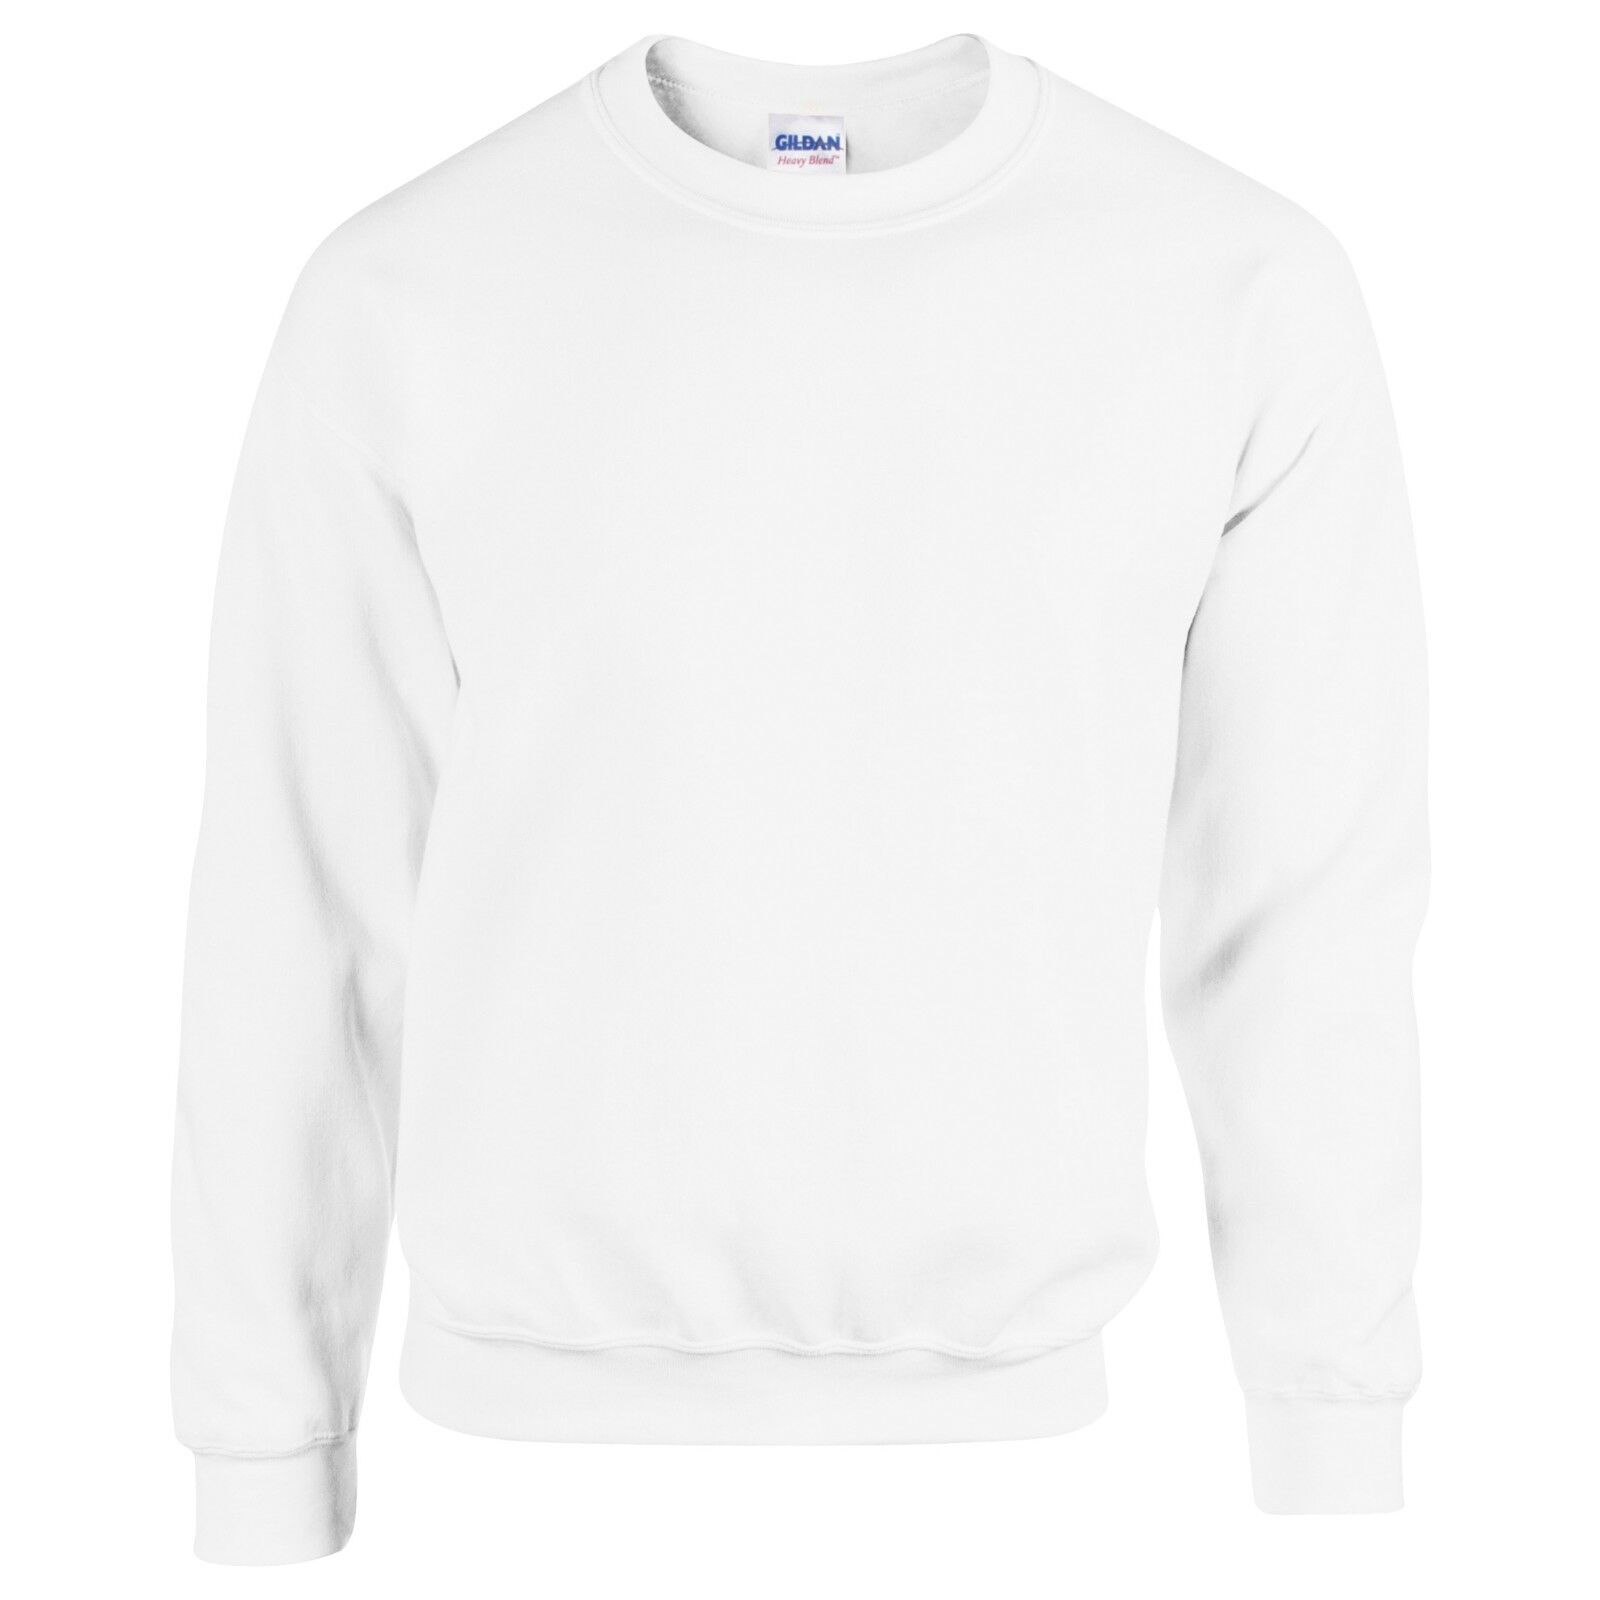 The New Mrs Crew Neck Personalised Sweatshirt Slouch Jumper Wife Christmas Gift